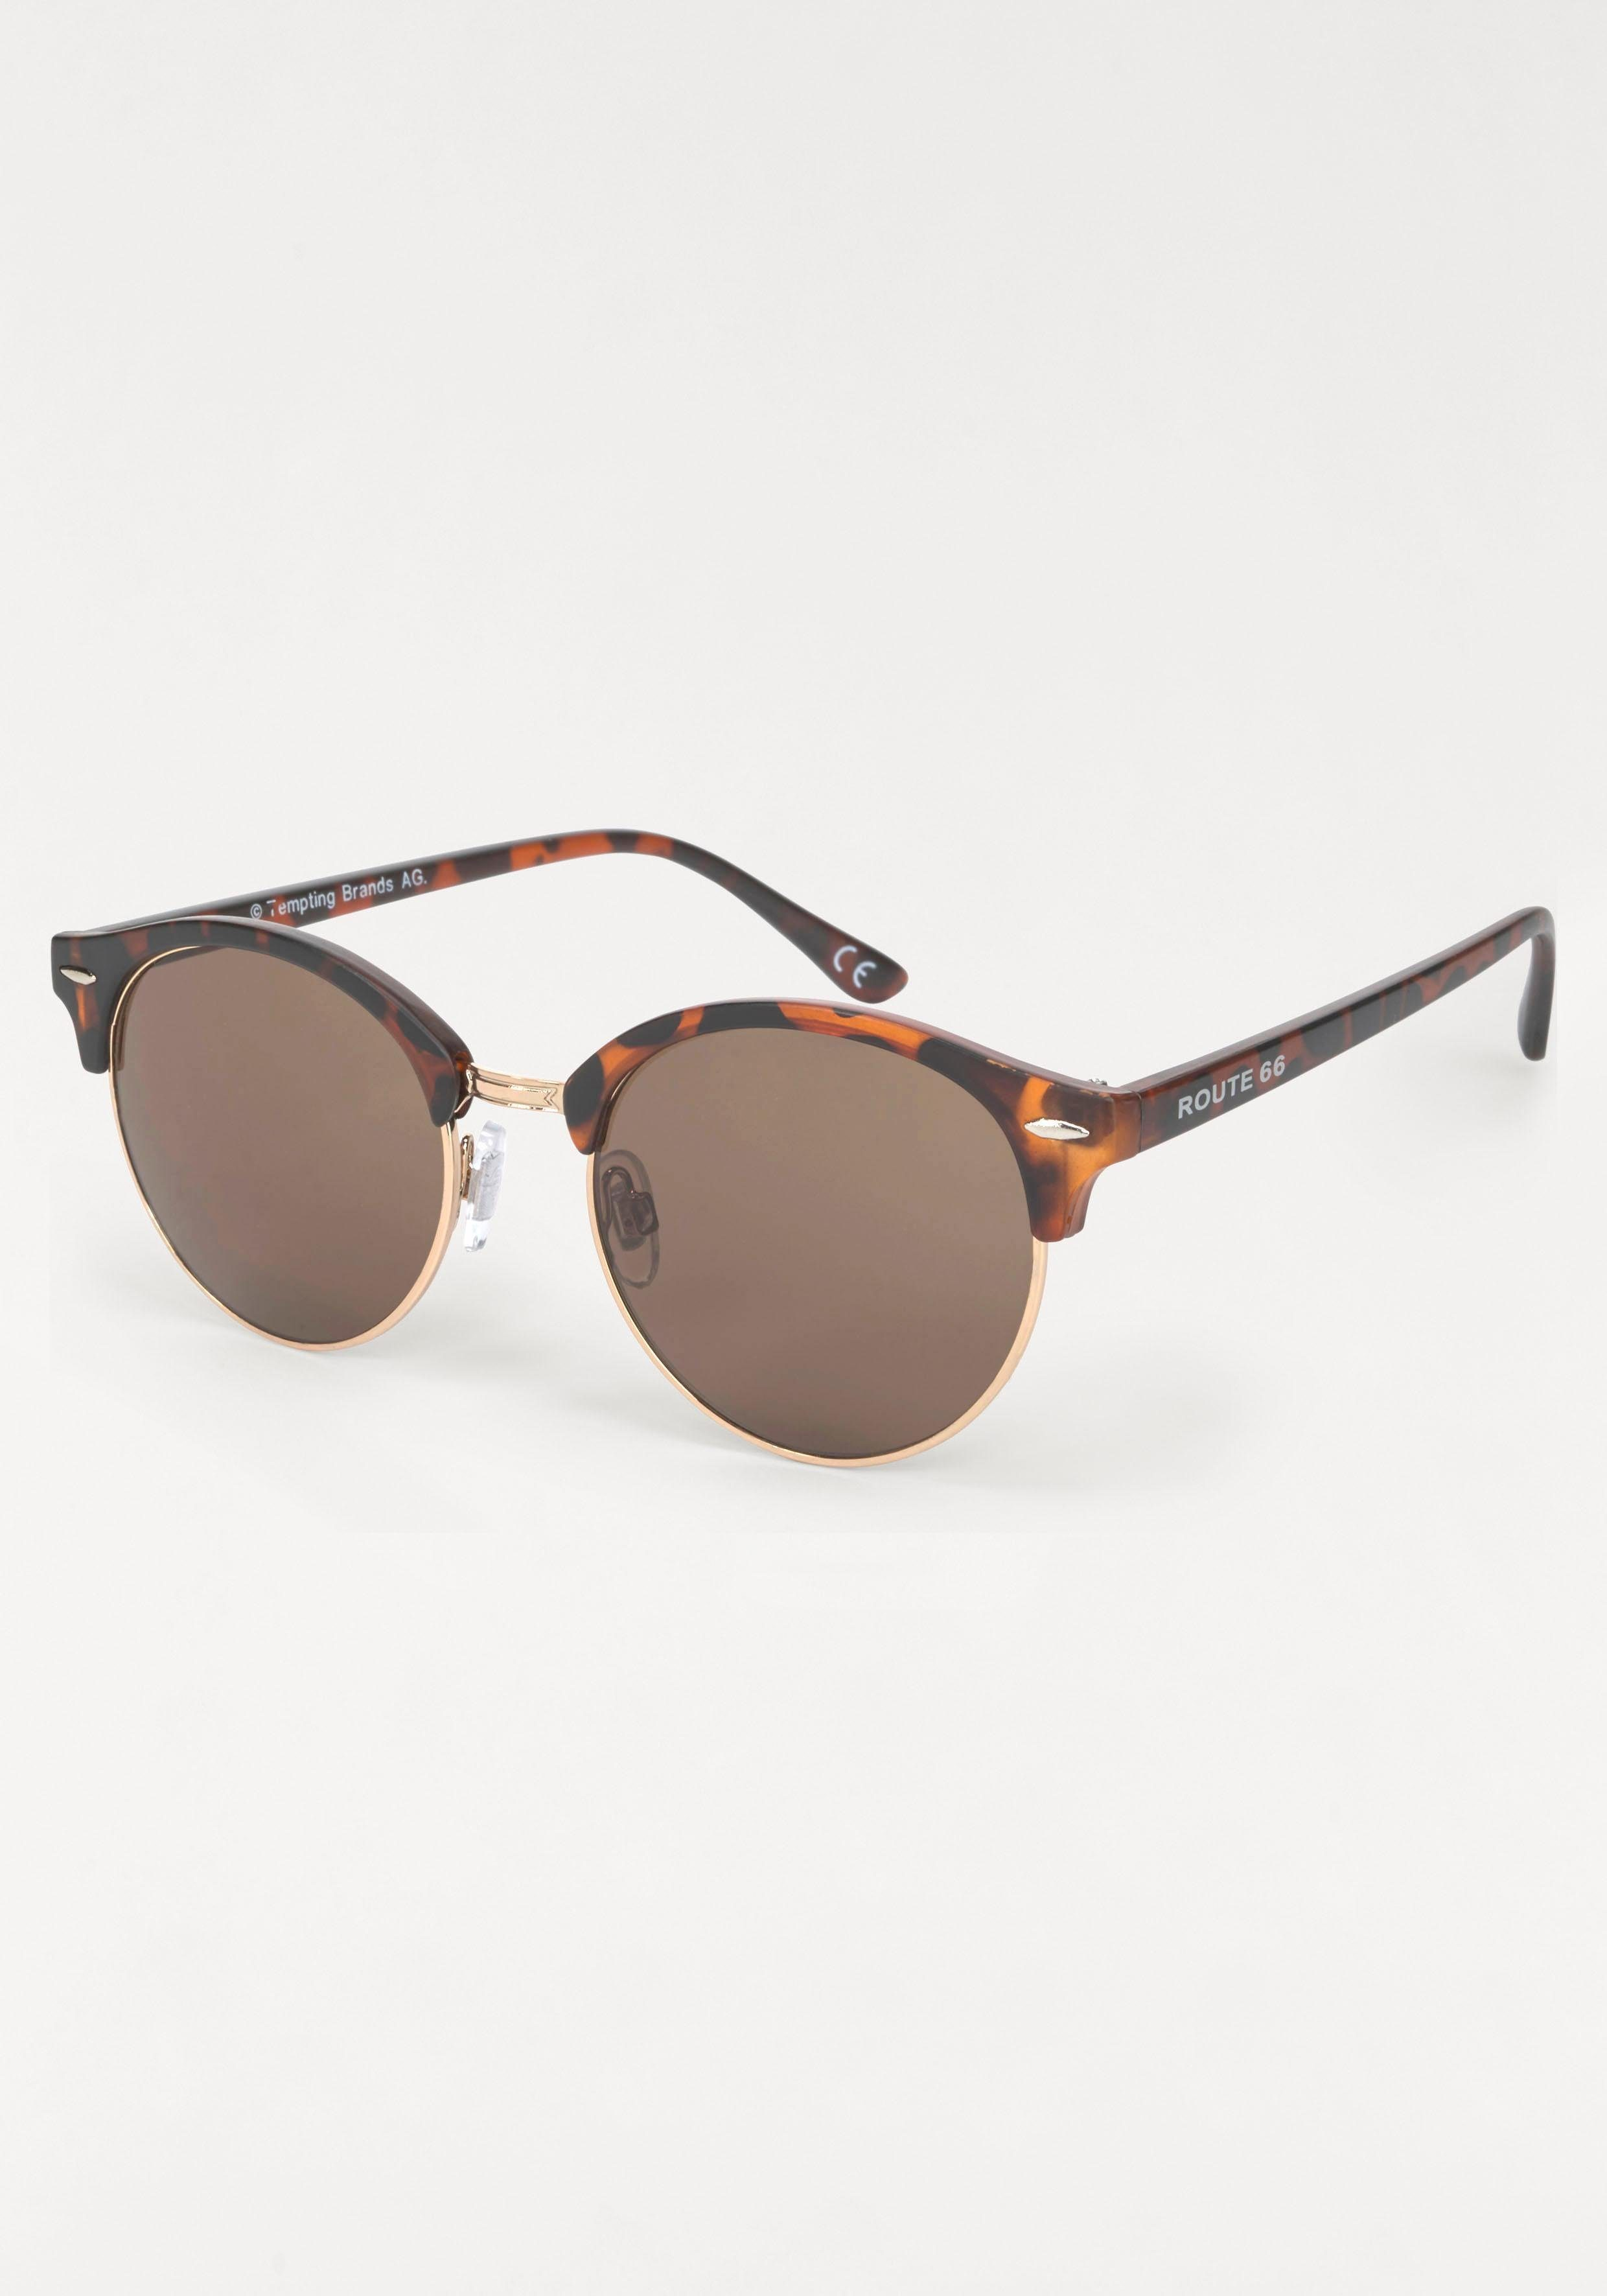 ROUTE 66 Feel the Freedom Eyewear Sonnenbrille im Animal Look, Clubmaster Style